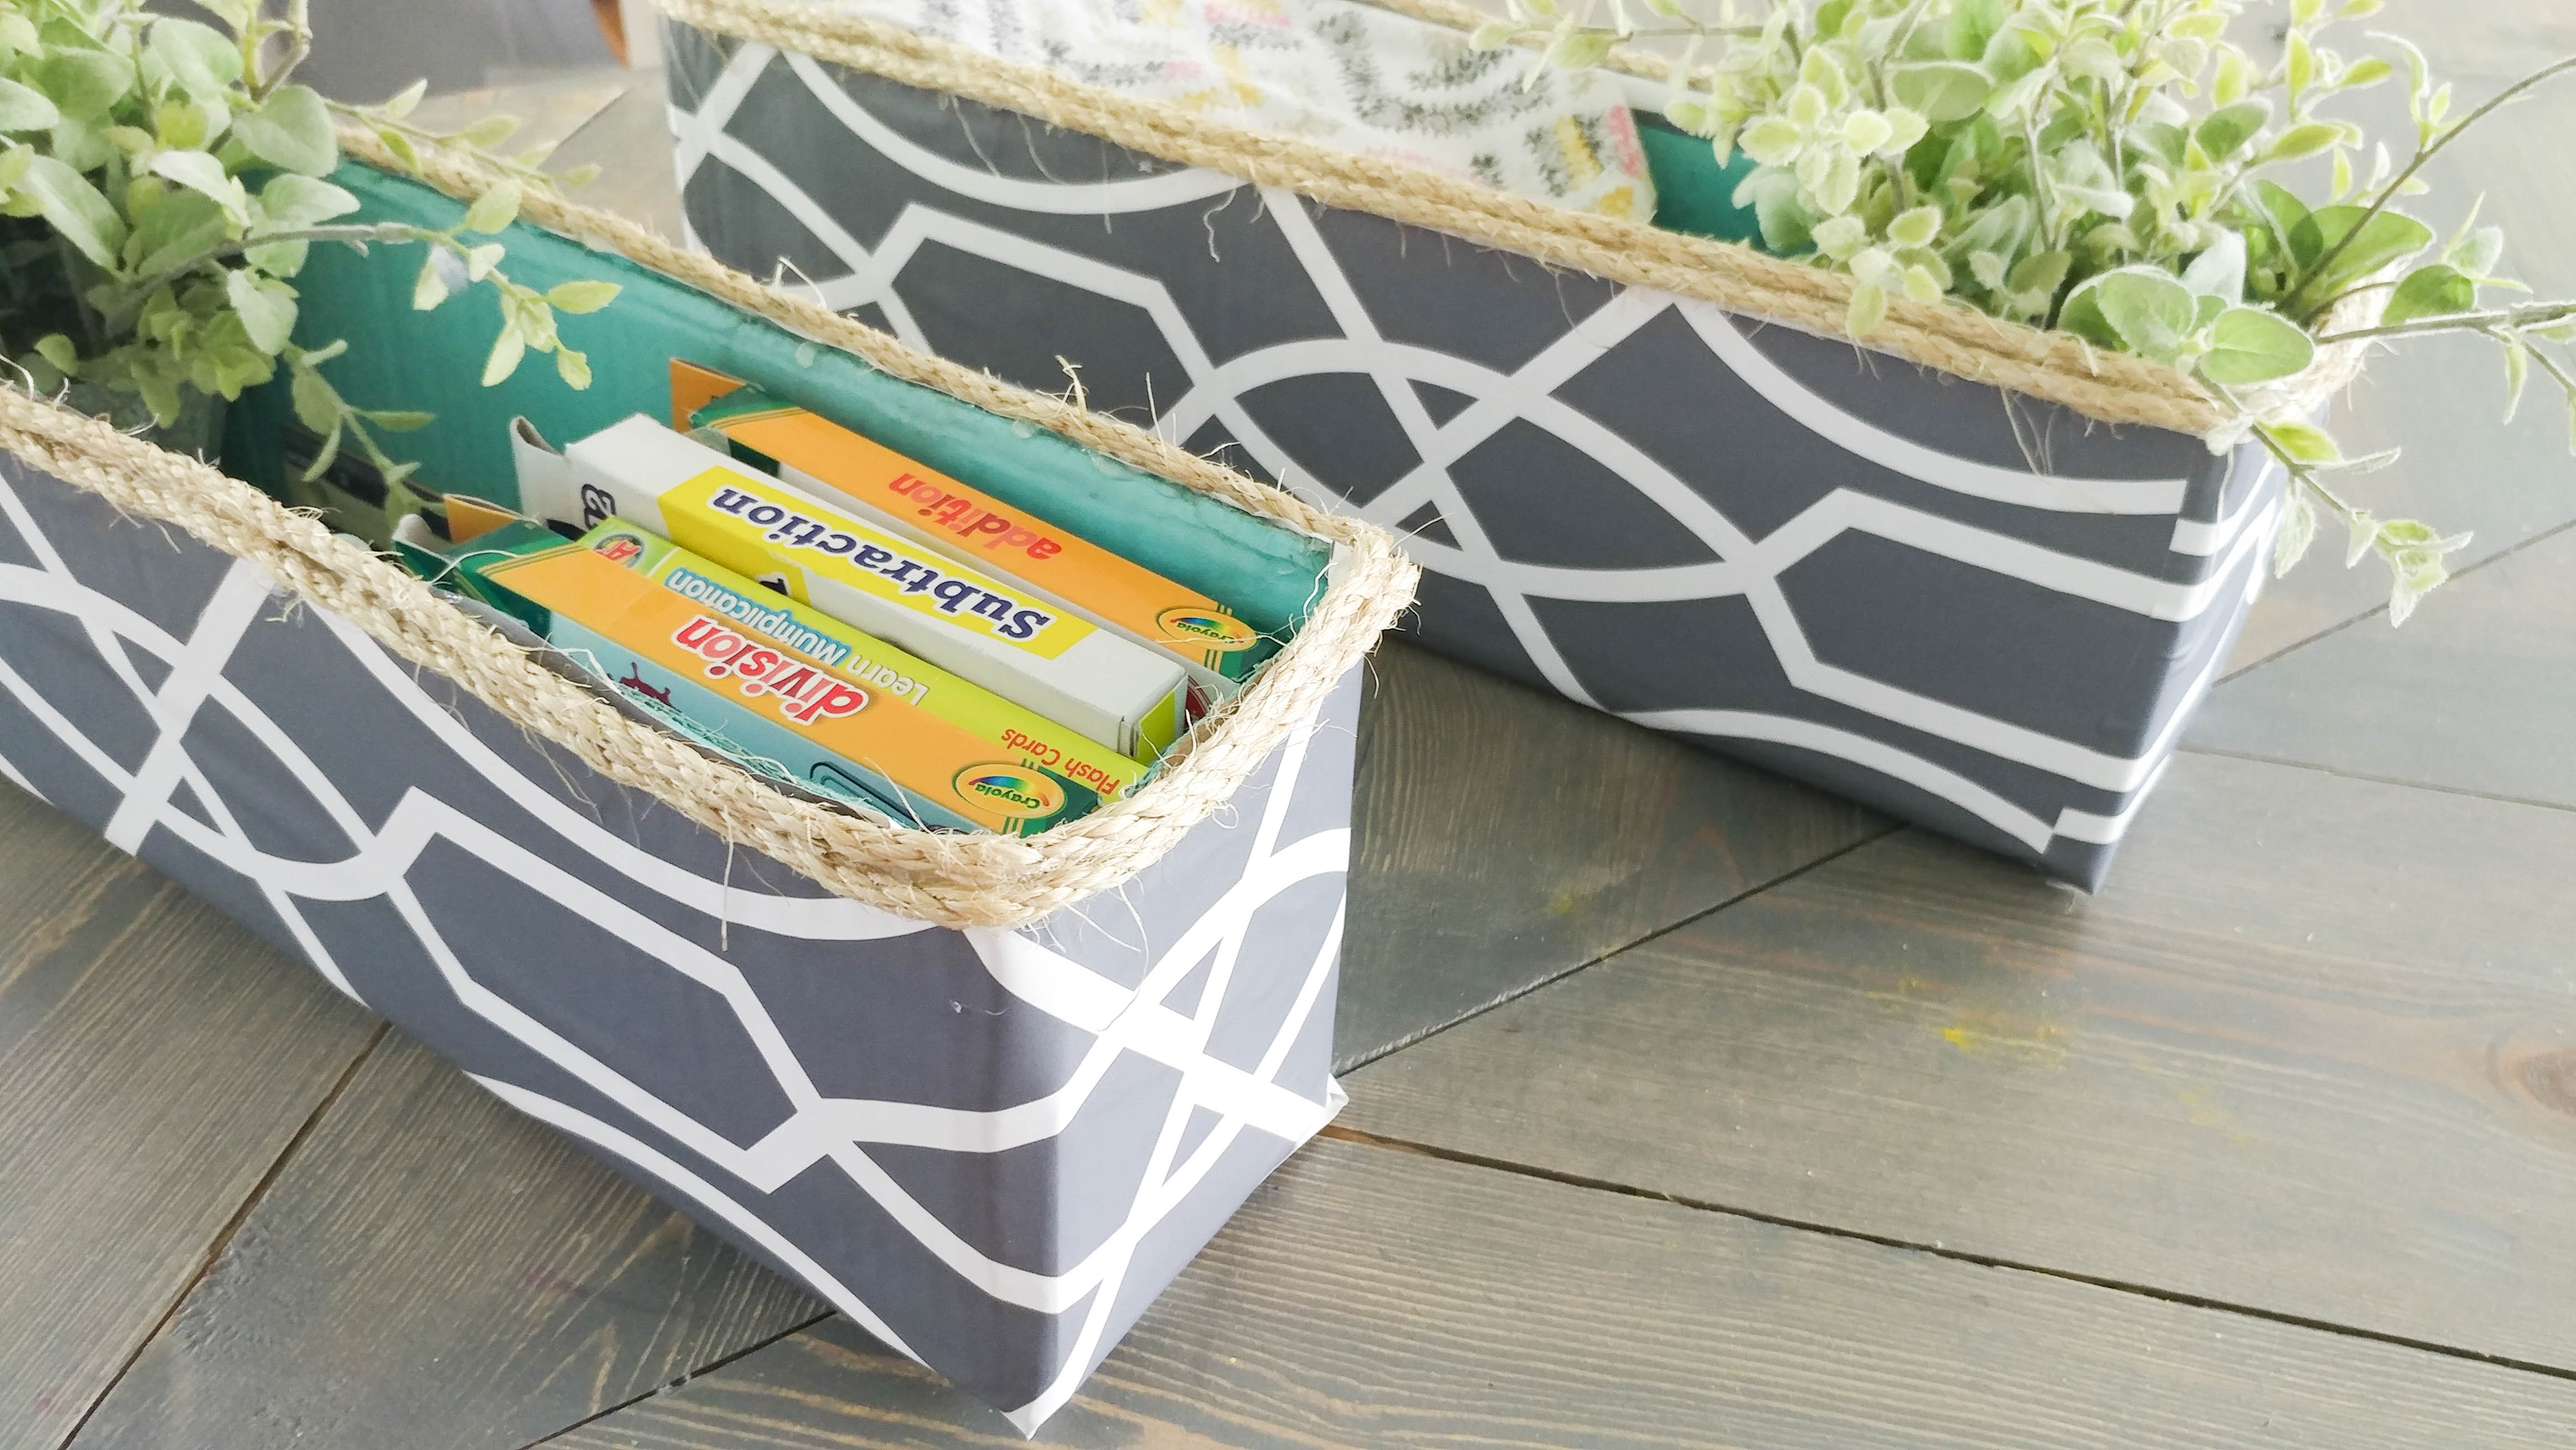 Decorative Boxes How To Make : Diy decorative storage bin cardboard box upcycle our